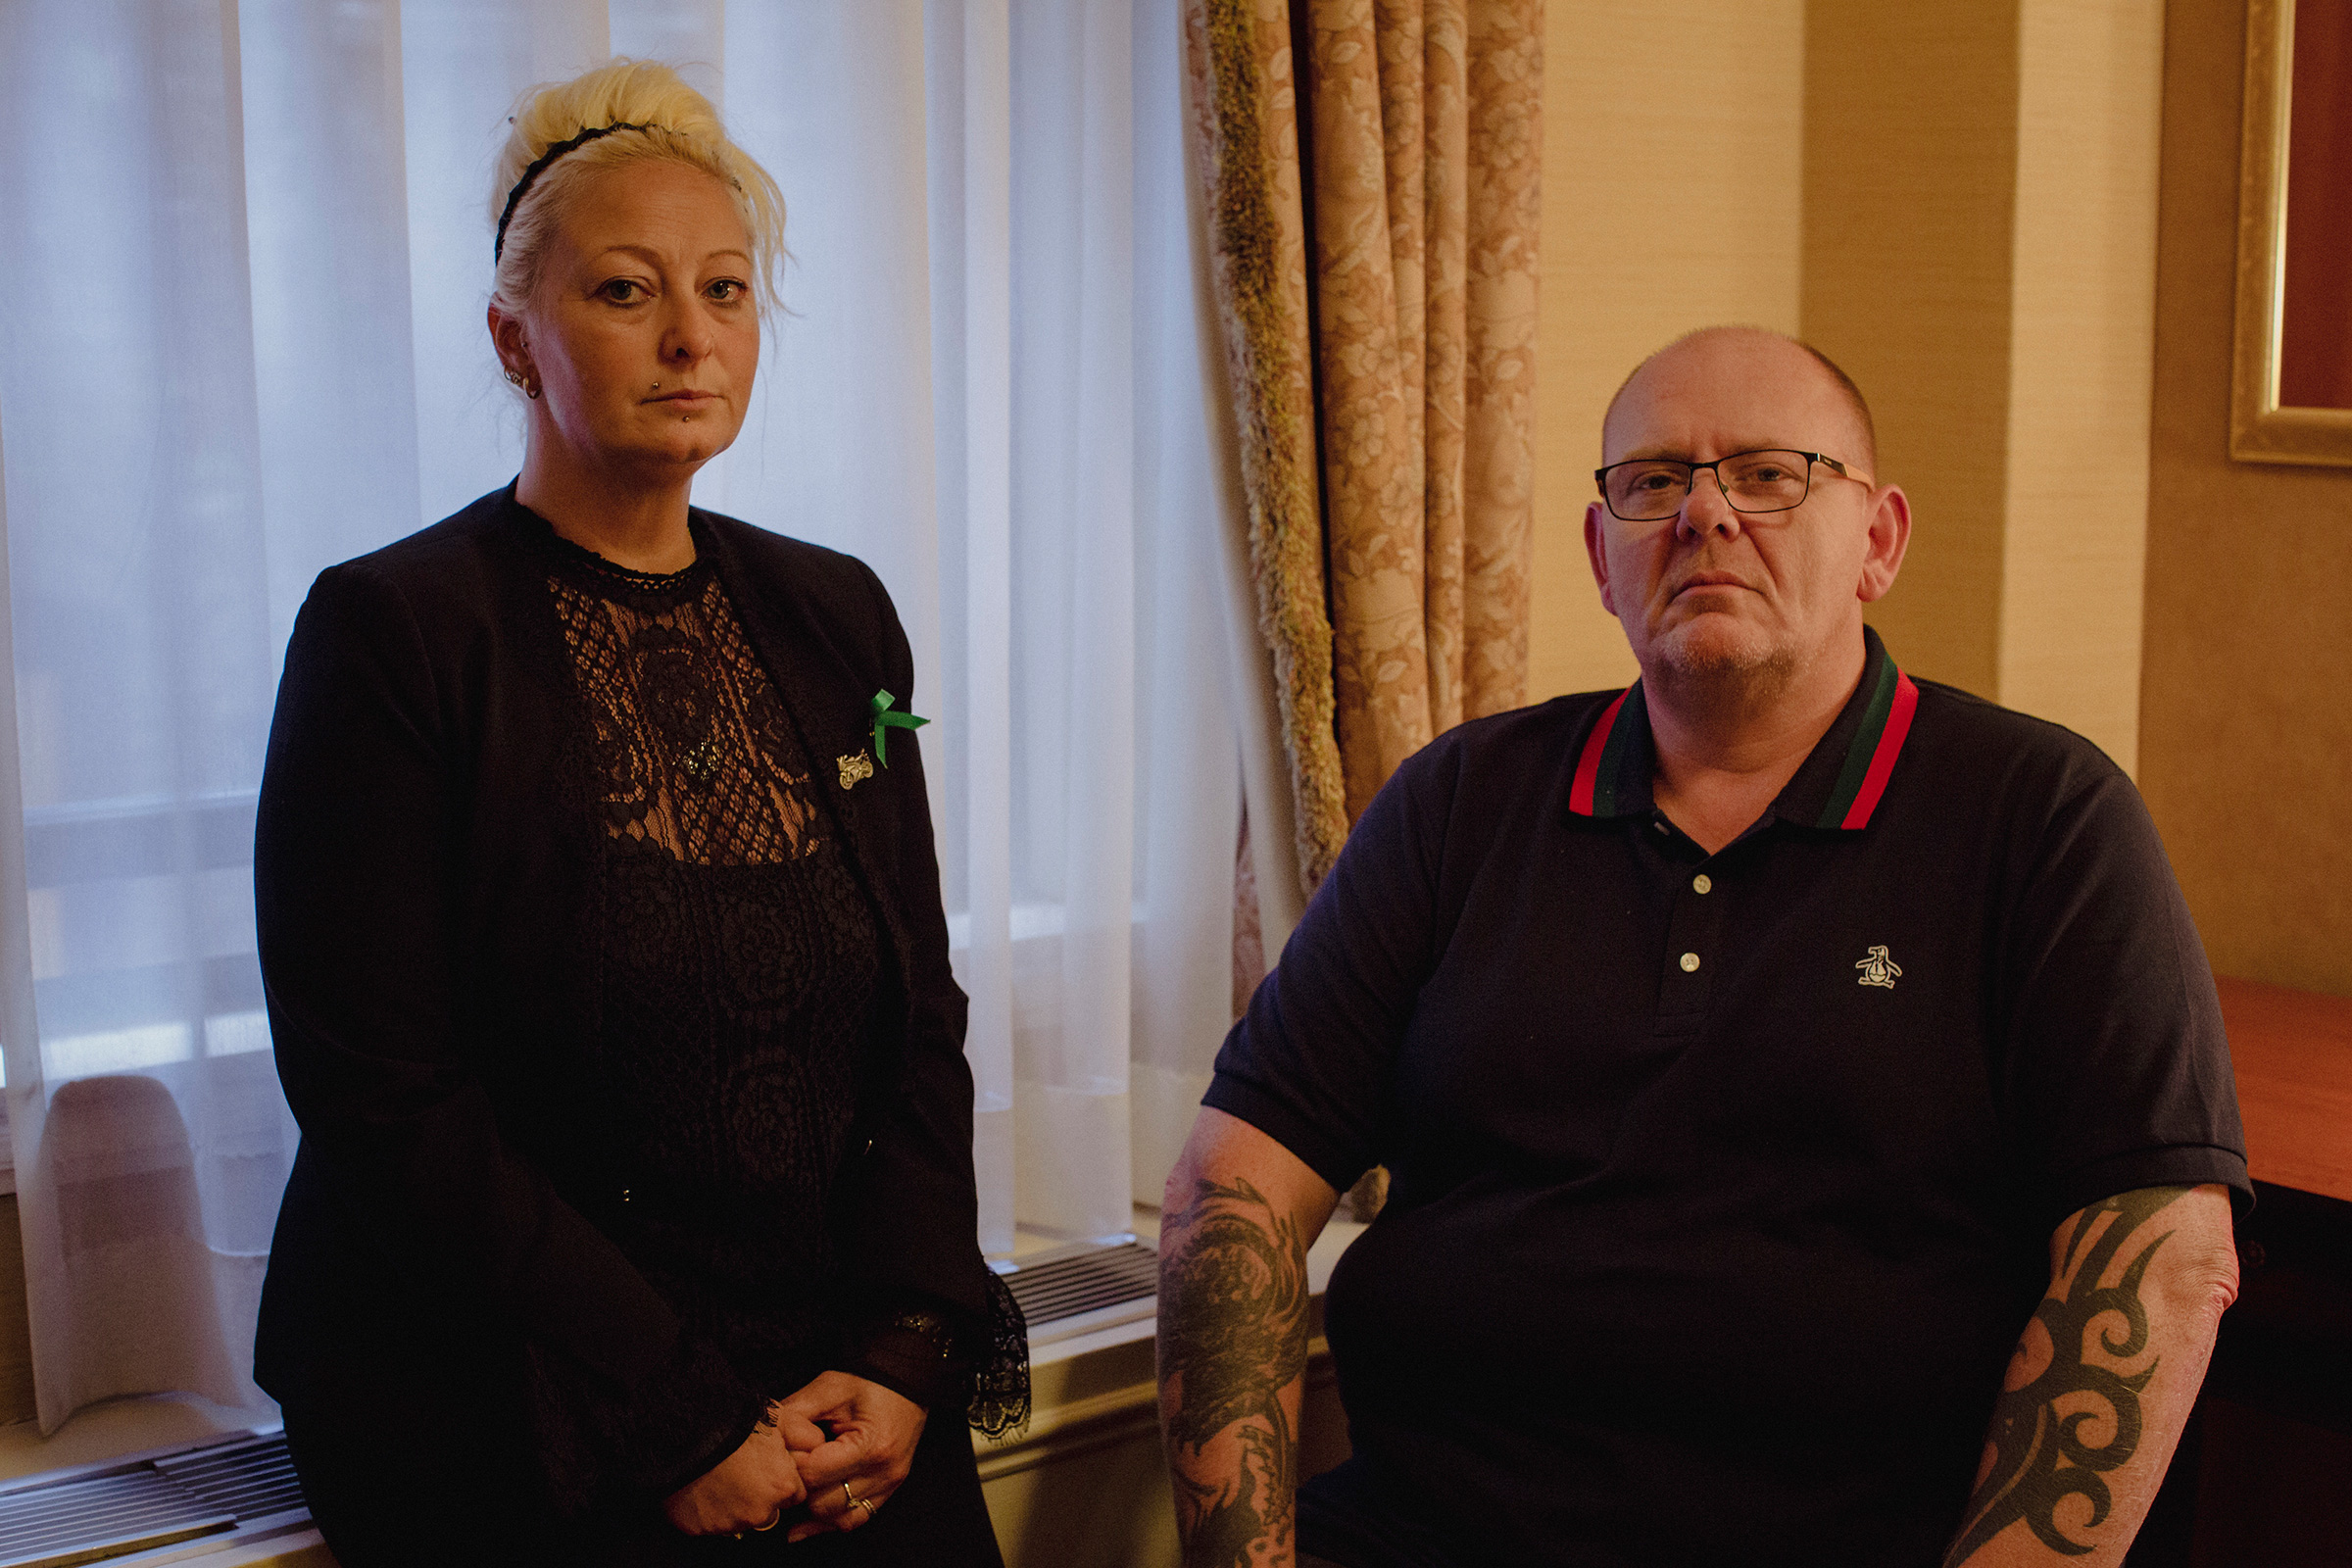 Charlotte Charles and Tim Dunn, the parents of Harry Dunn, a 19-year-old who was killed when a car crashed into his  motorbike on August 27.